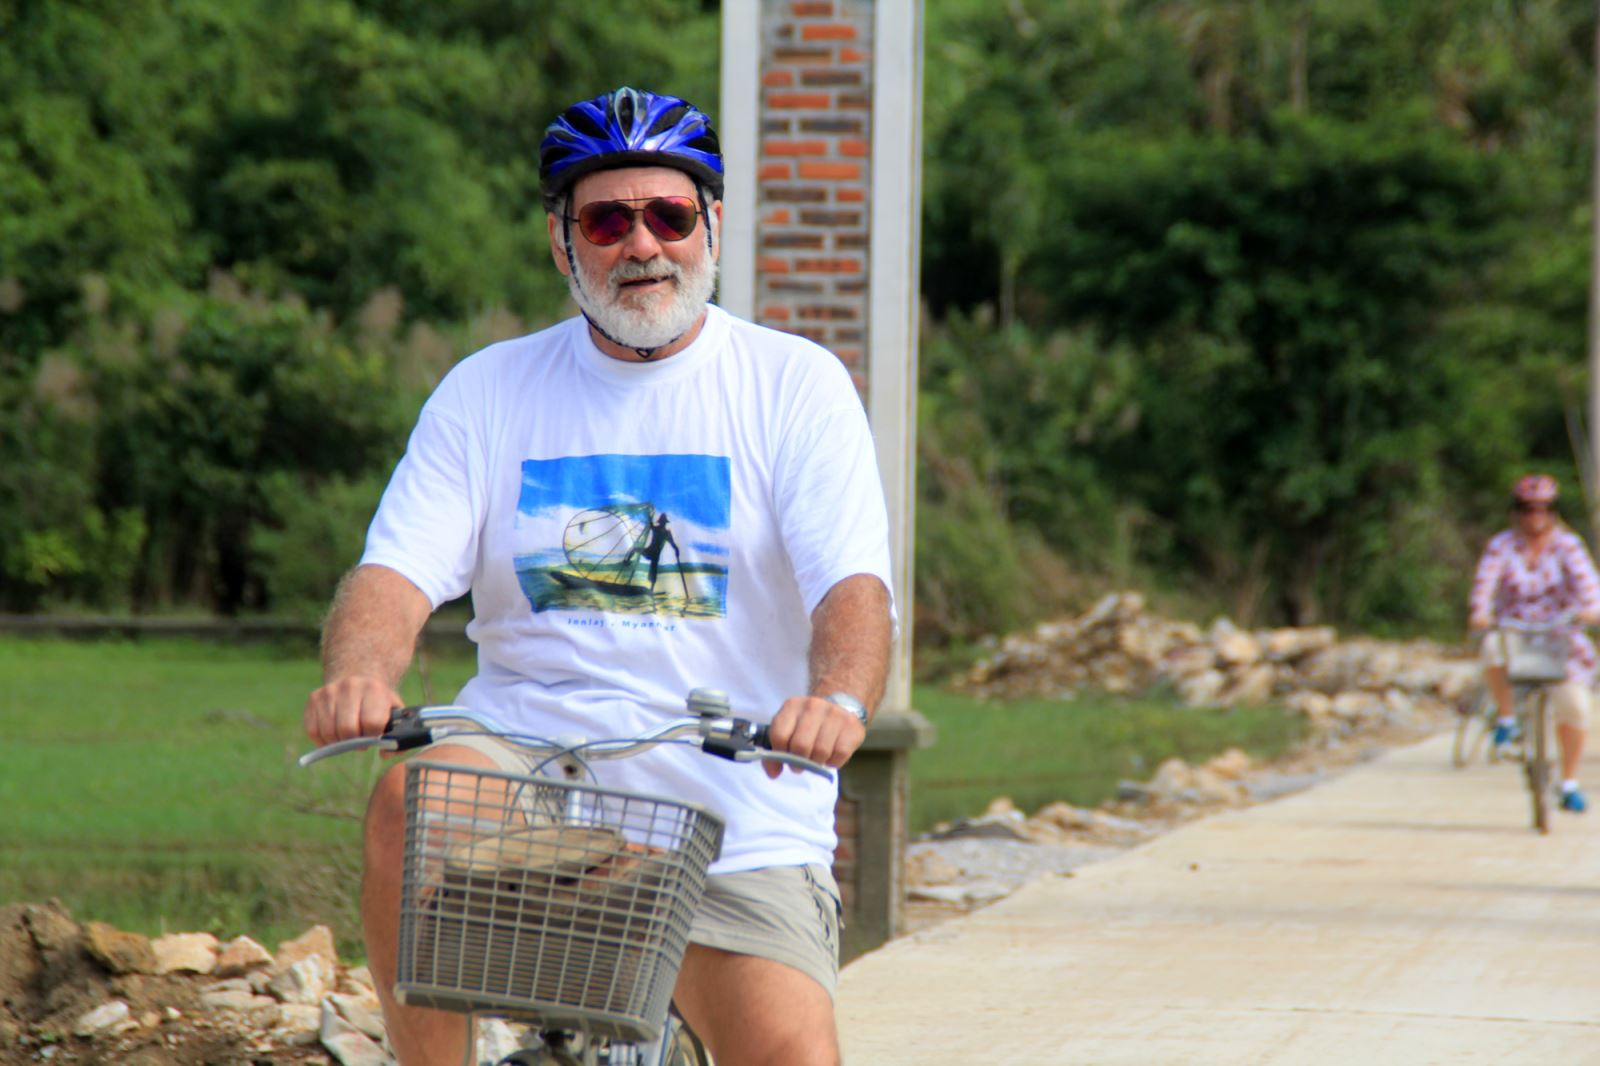 biking in viet hai village.jpg